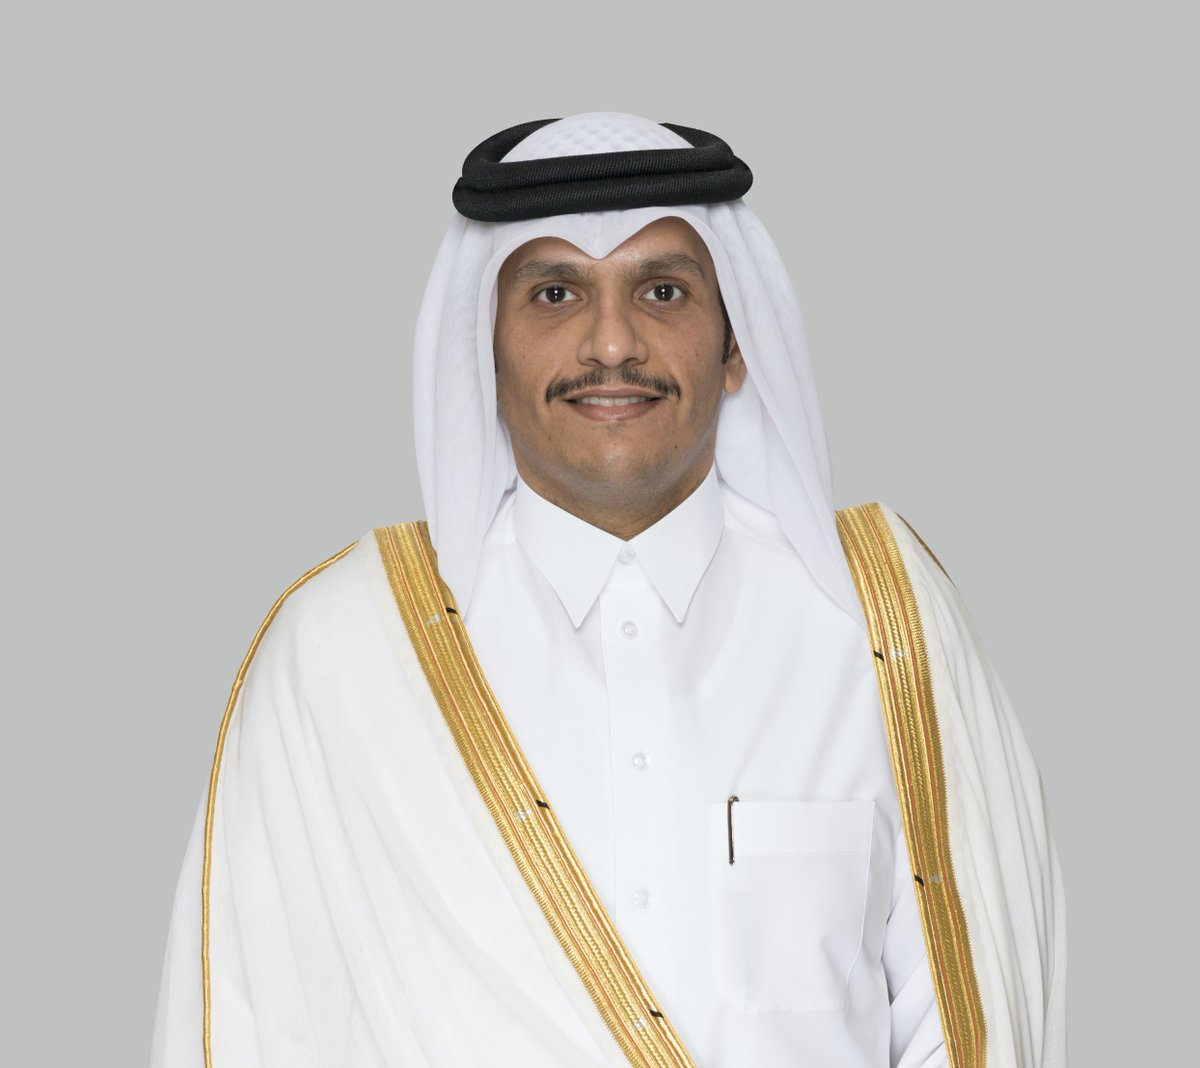 Deputy Prime Minister and Minister of Foreign Affairs @MBA_AlThani_ Sends Message to Foreign Minister of #Georgia bit.ly/2SjMWX6 #MOFAQatar